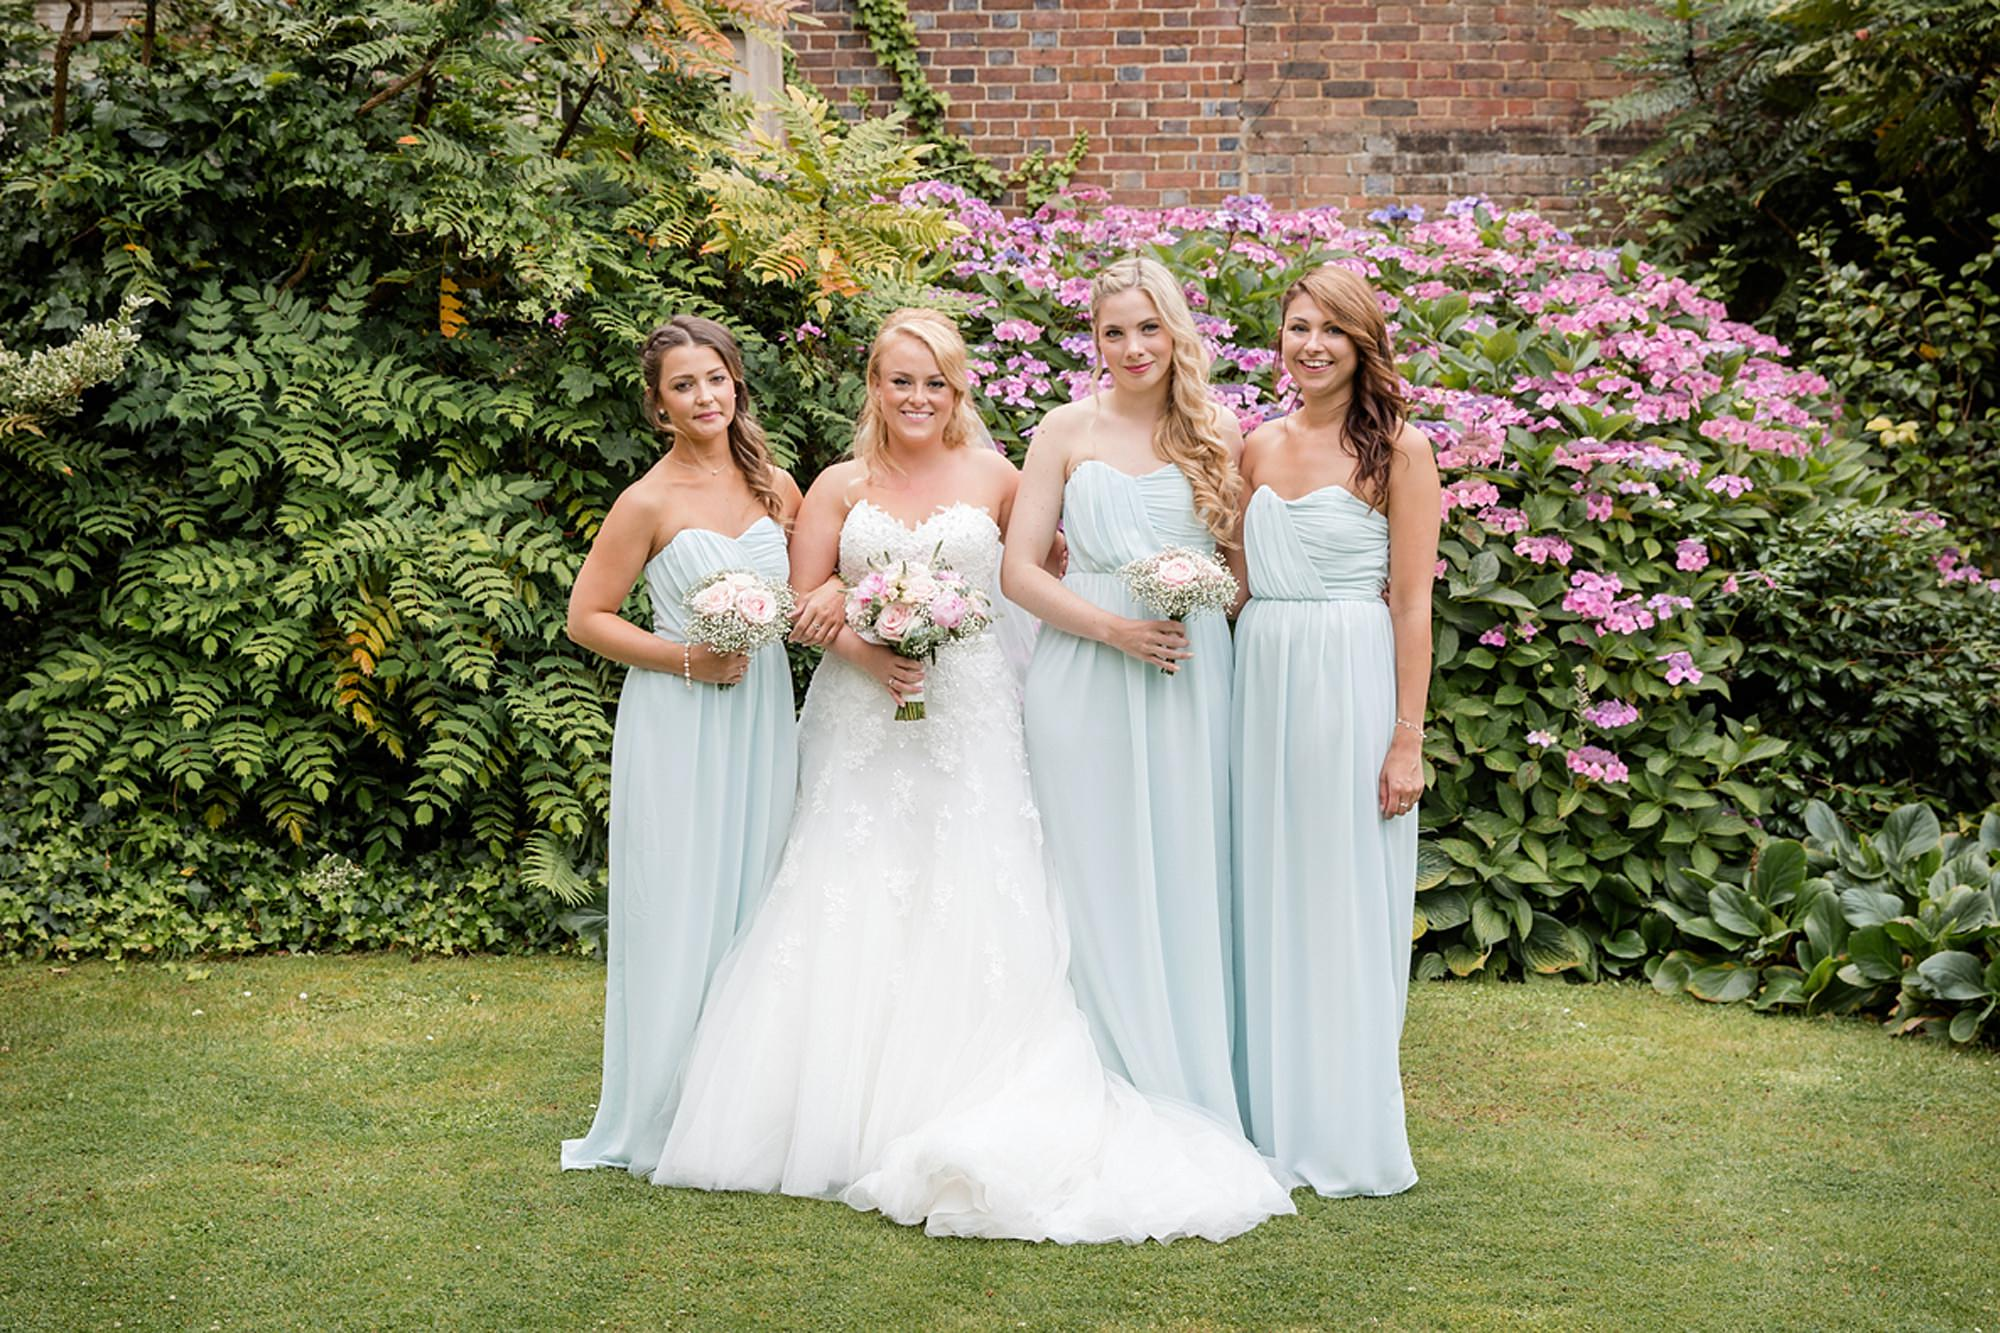 Old Greens Barn Newdigate wedding photography bride and bridesmaids